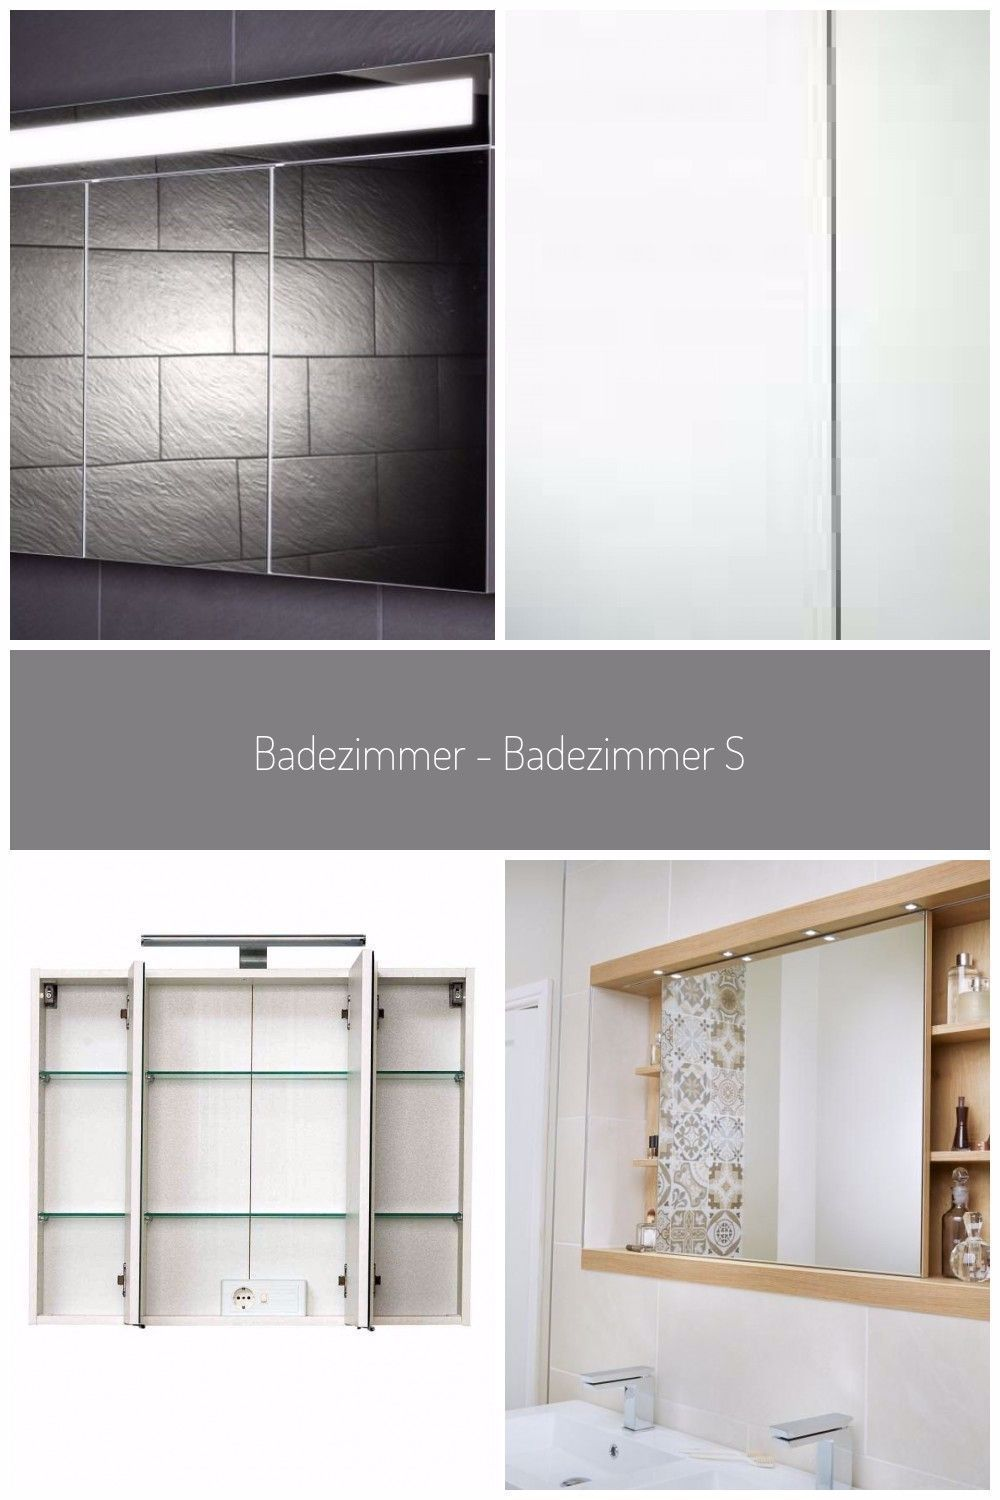 Badezimmer Badezimmer Spiegelschrank Led Beleuchtung Badezimmerspiegelschrank In 2020 Bathroom Mirror Cabinet Mirror Cabinets Lighted Bathroom Mirror